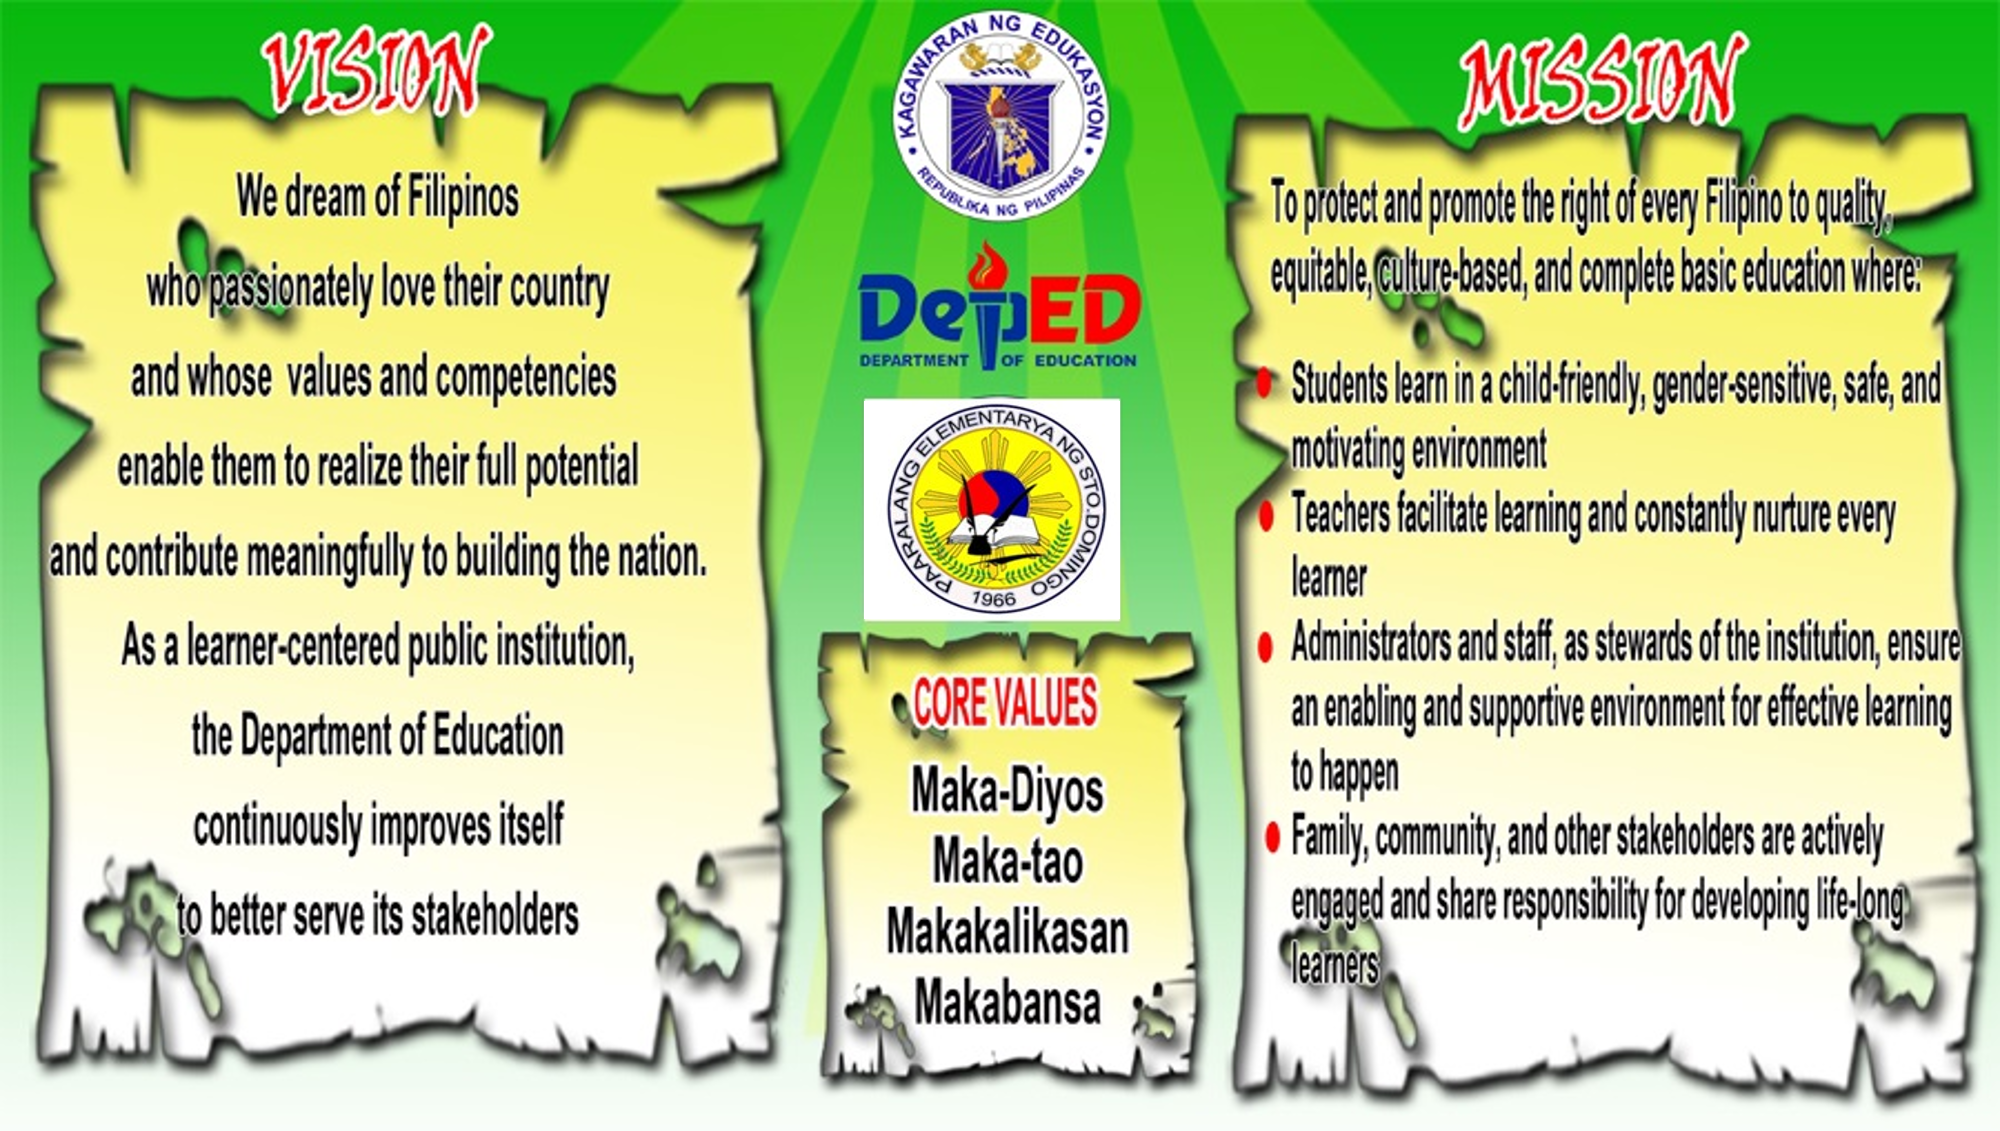 Deped Mission Vision Core Values